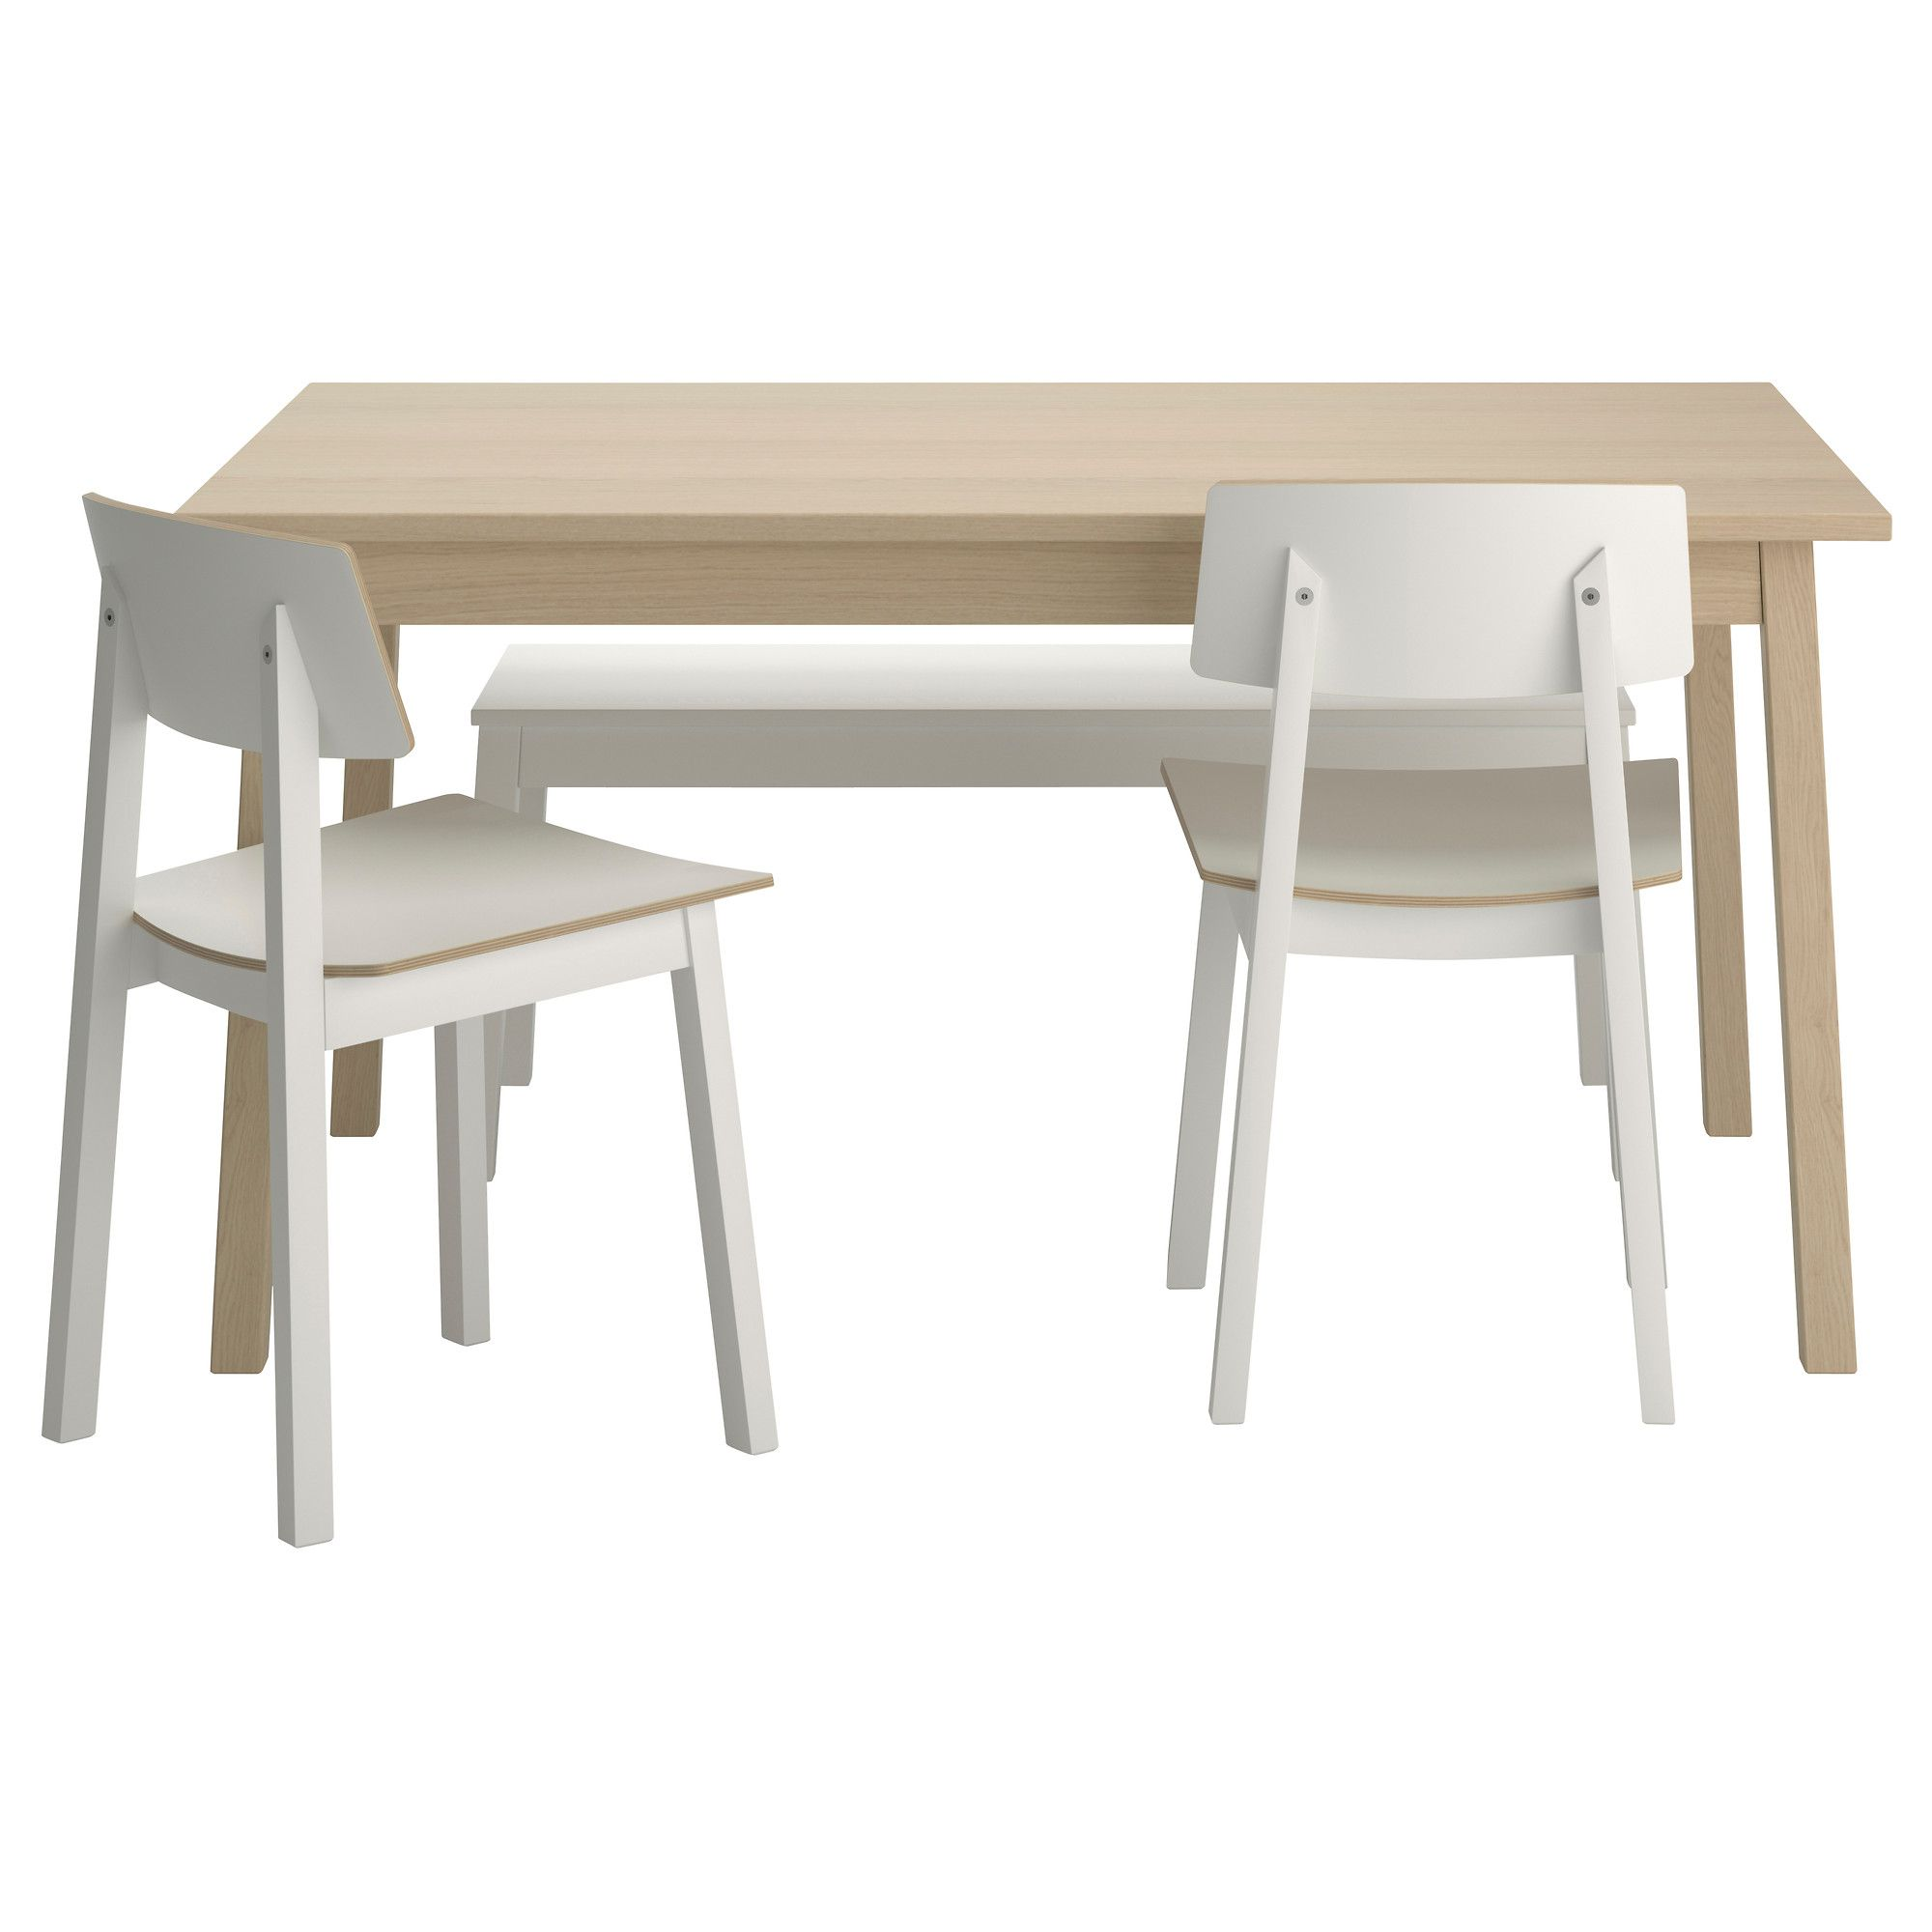 TRANETORP/SIGURD Table, bench and 2 chairs - IKEA | Home Sweet ...